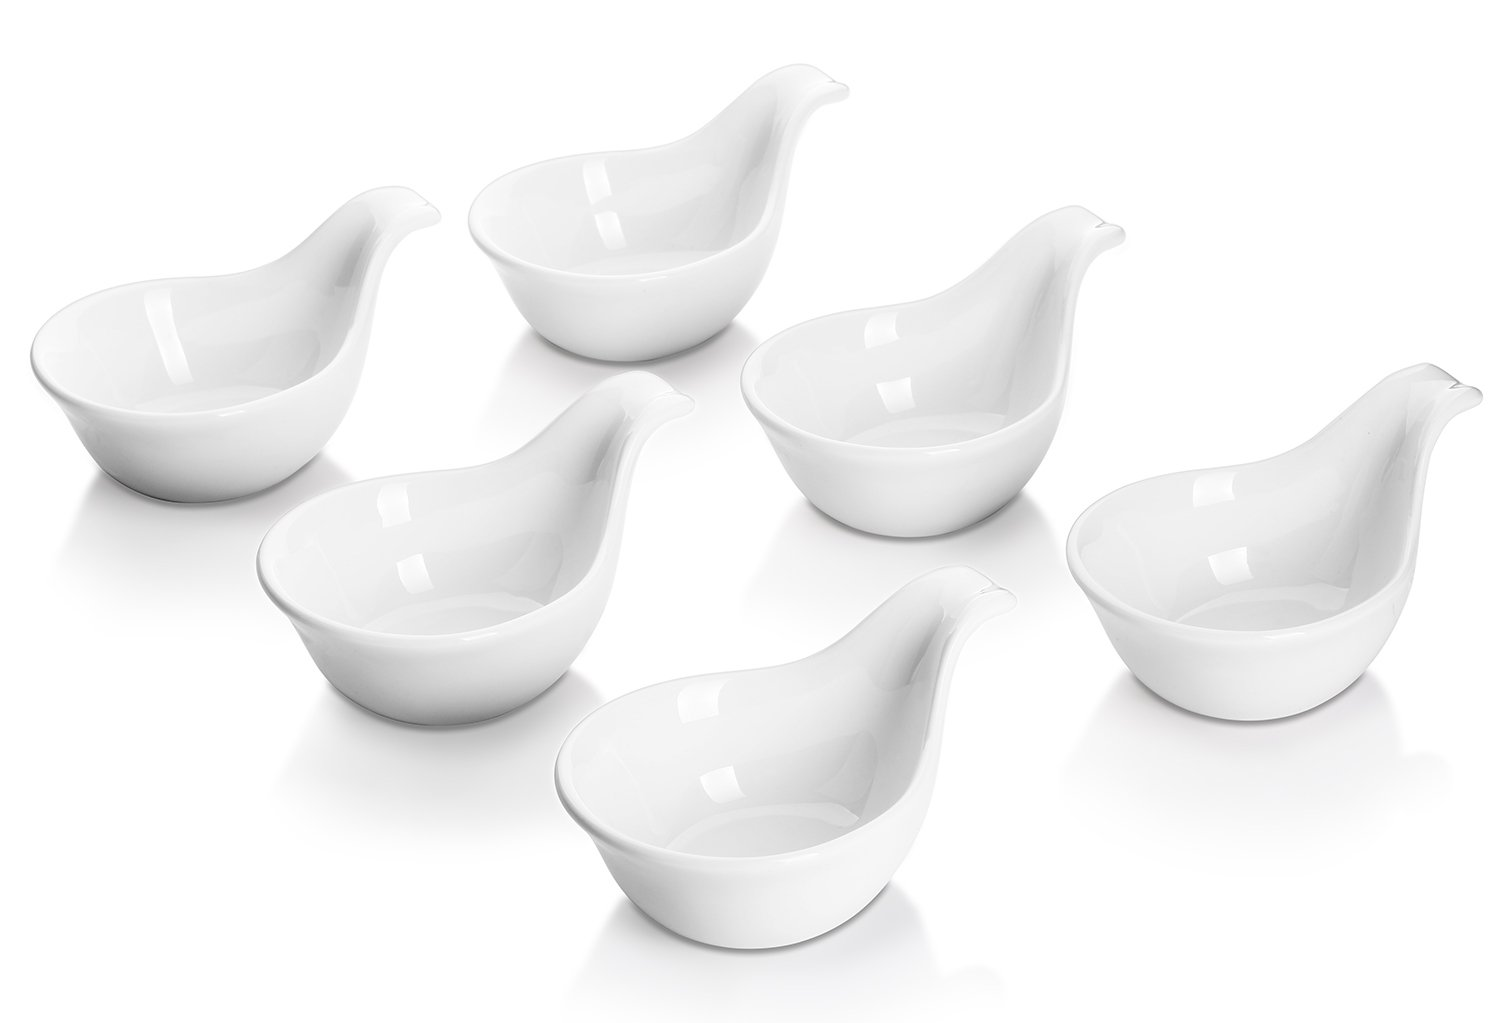 DOWAN 3 Ounce Porcelain Dipping Bowls, Soy Sauce Dishes, Appetizer Spoons, 6 Packs, White, Stackable Ramekins with Grip Handle by DOWAN